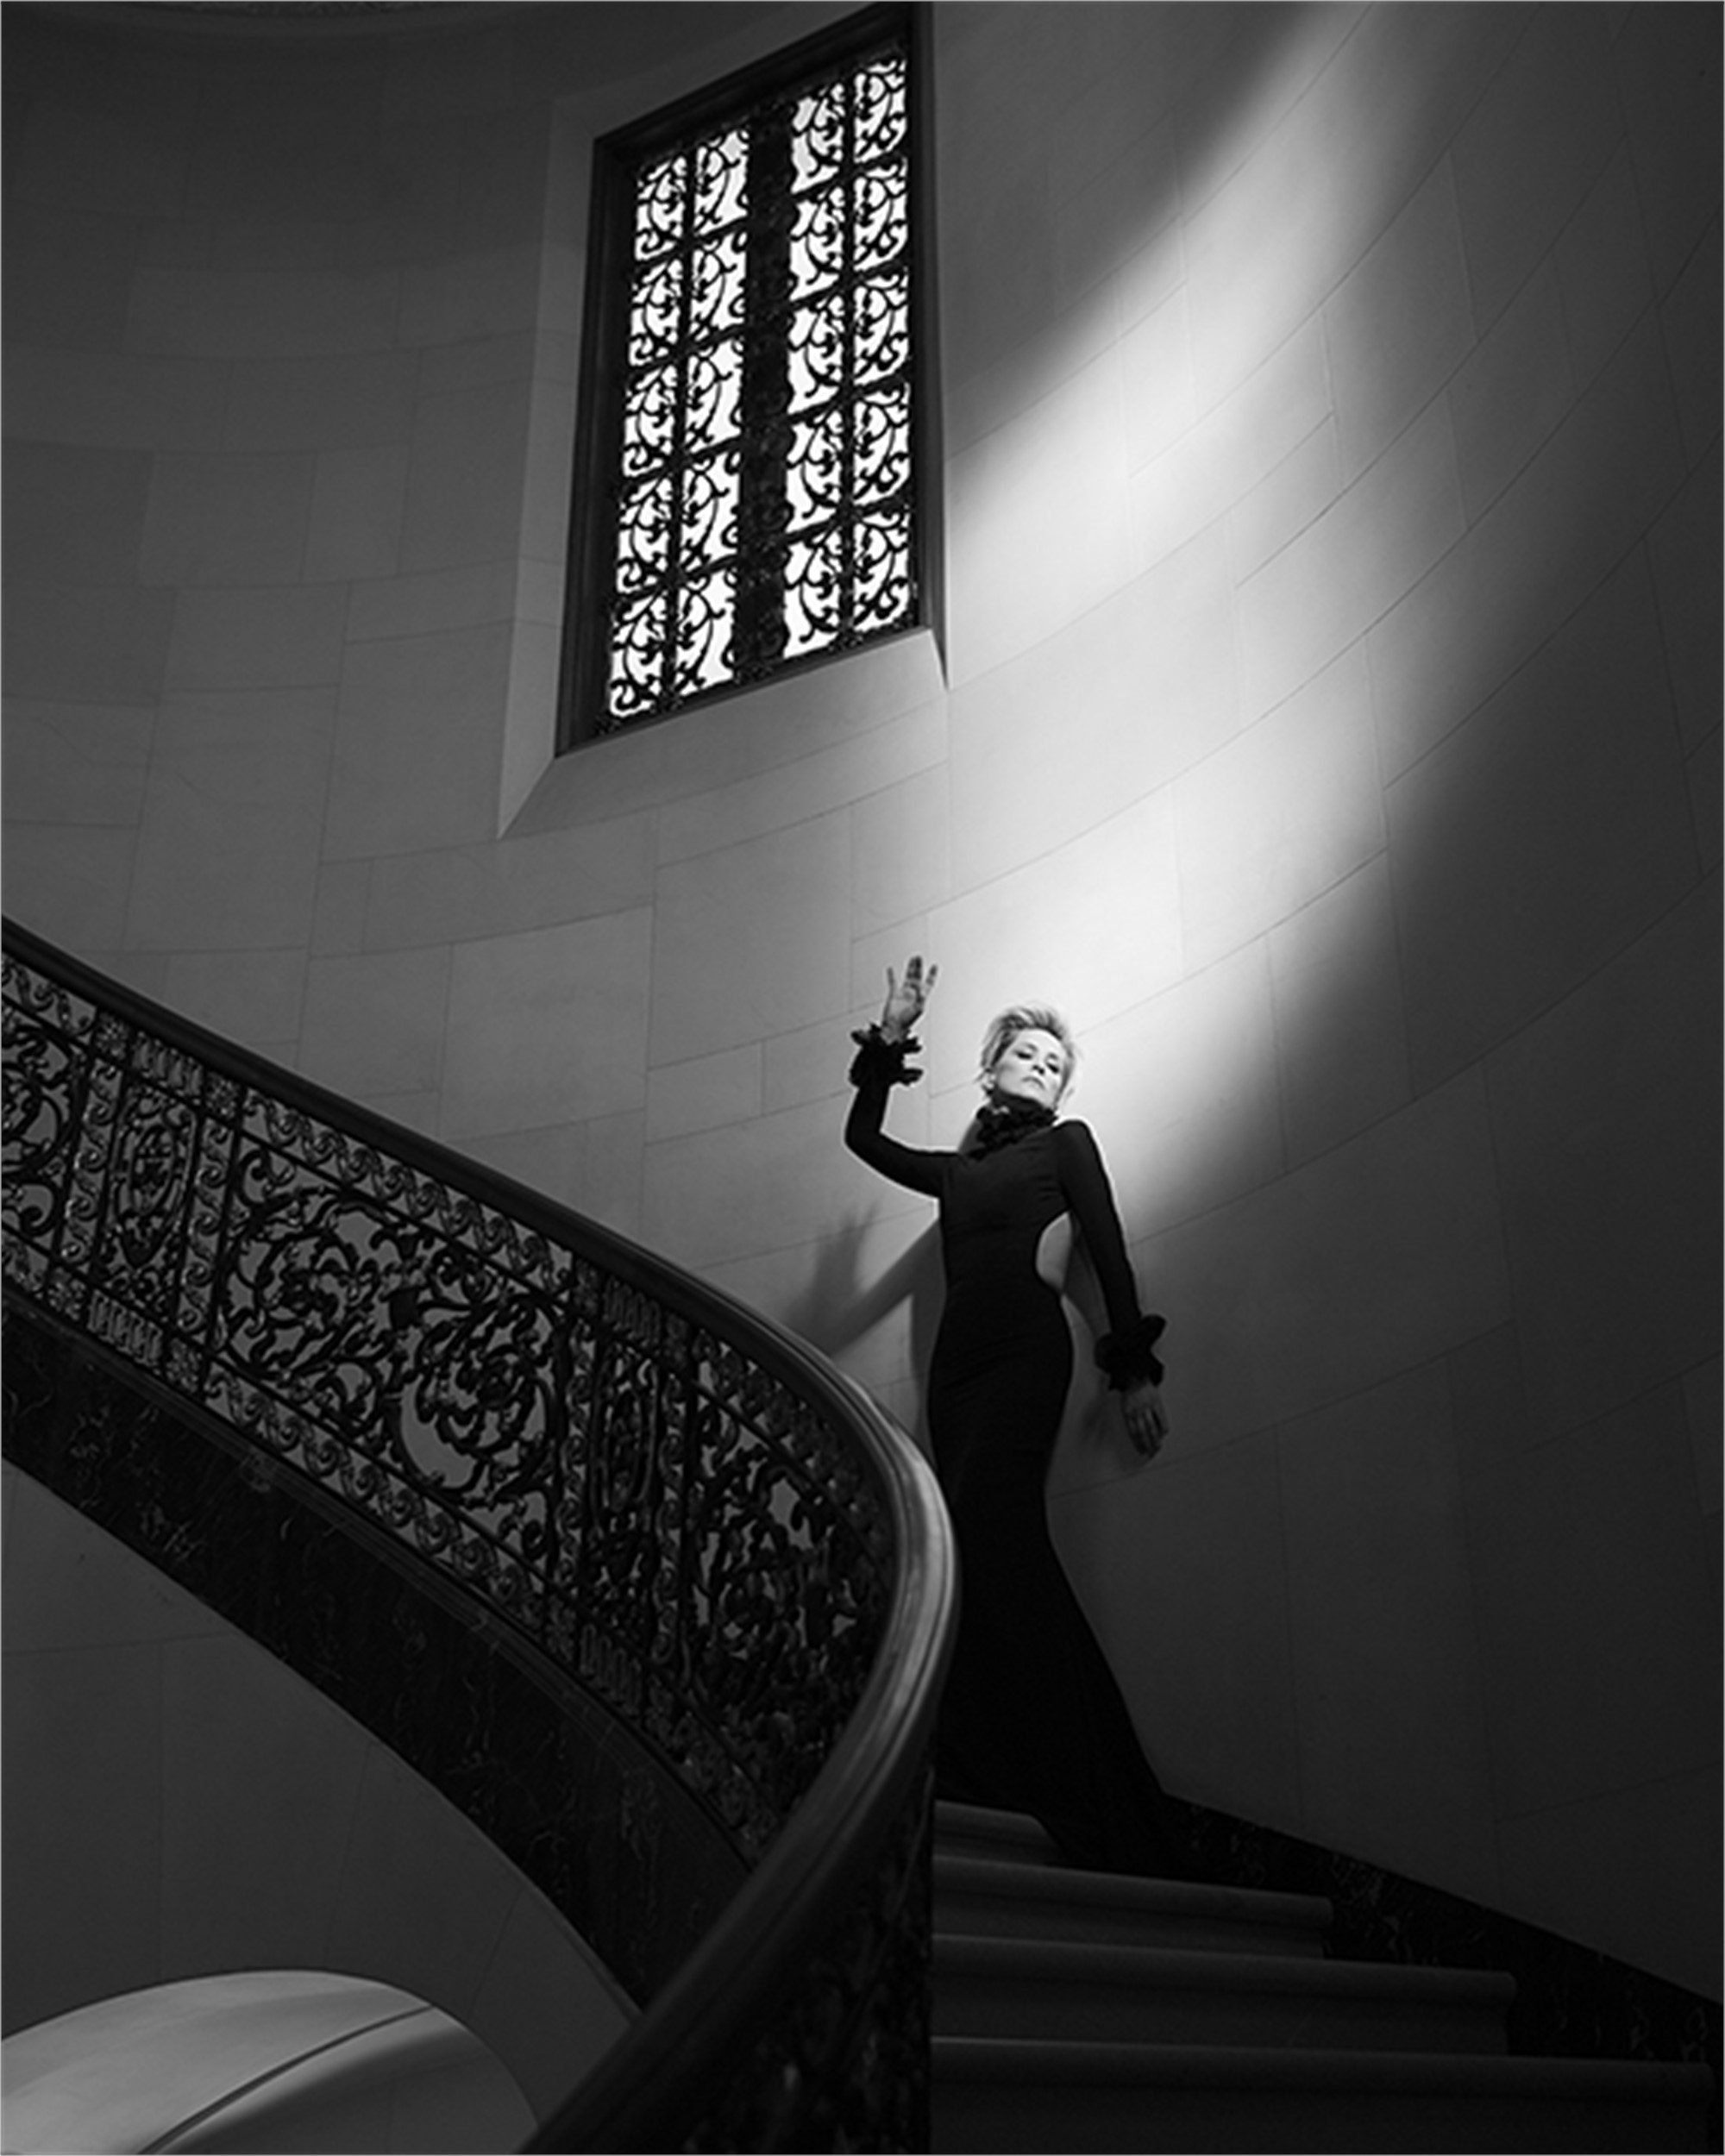 16004 Sharon Stone Against Wall on Staircase BW by Timothy White